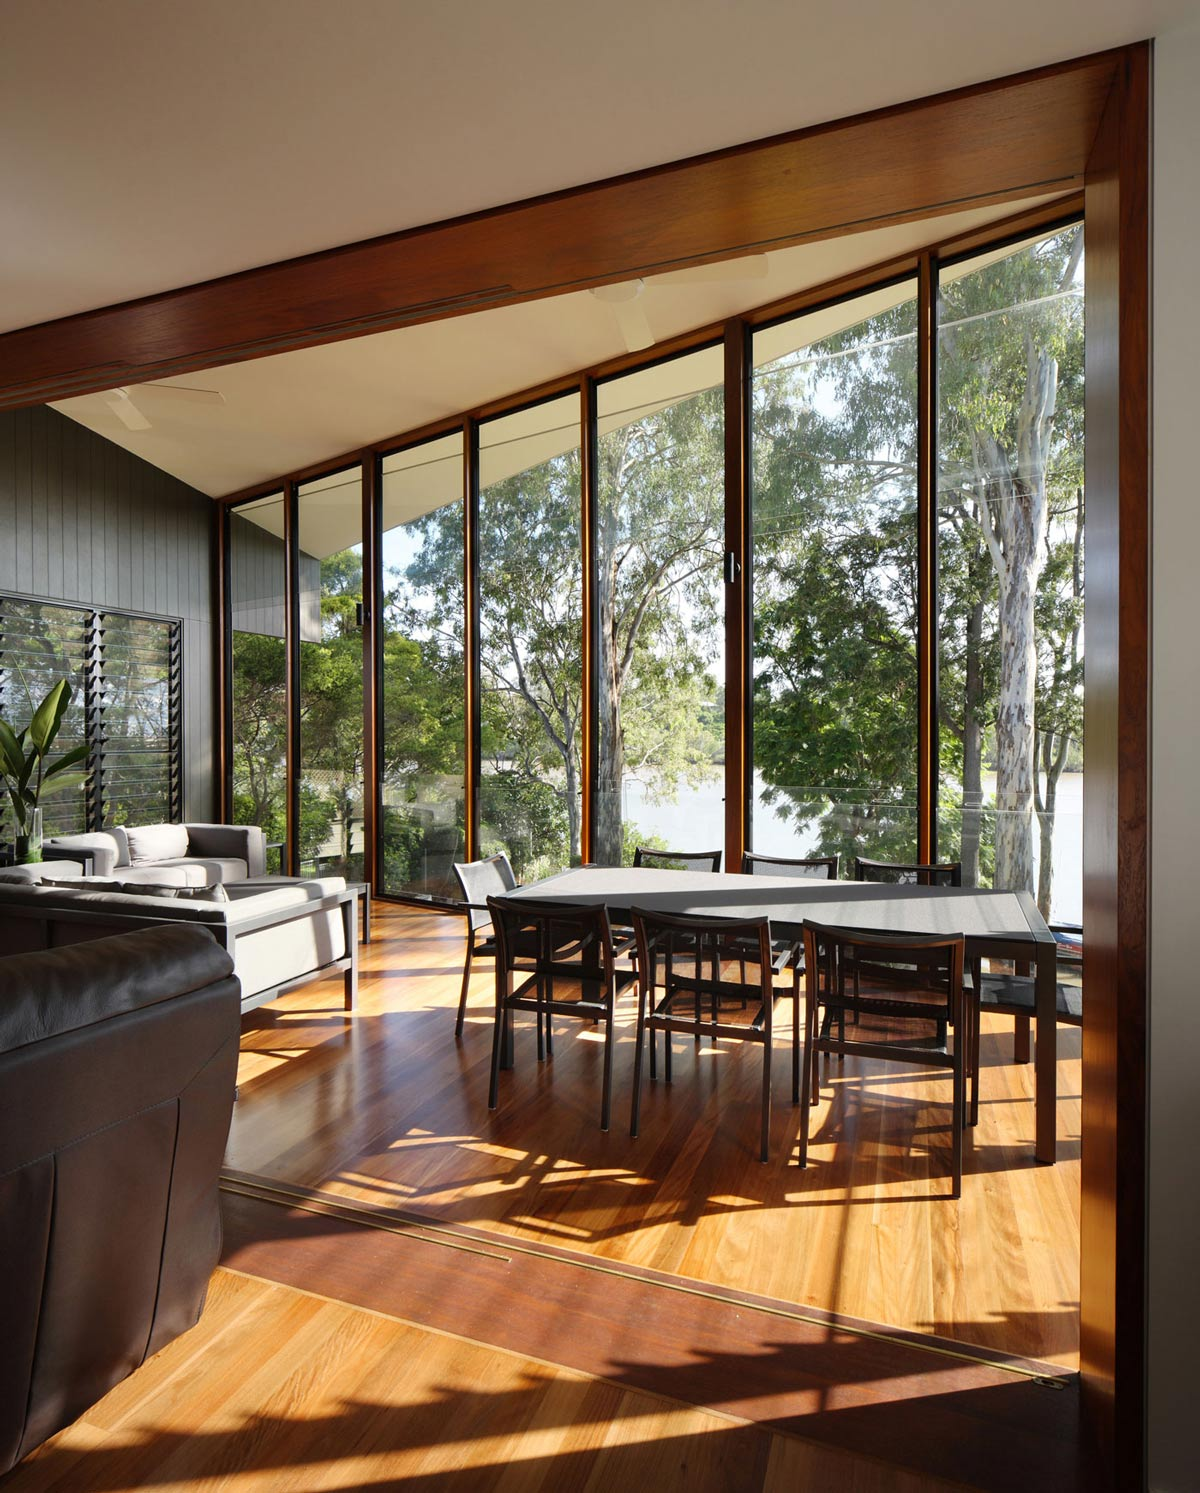 Balcony, Dining Table, Glass Walls, Renovation and Extension in Chelmer, Brisbane